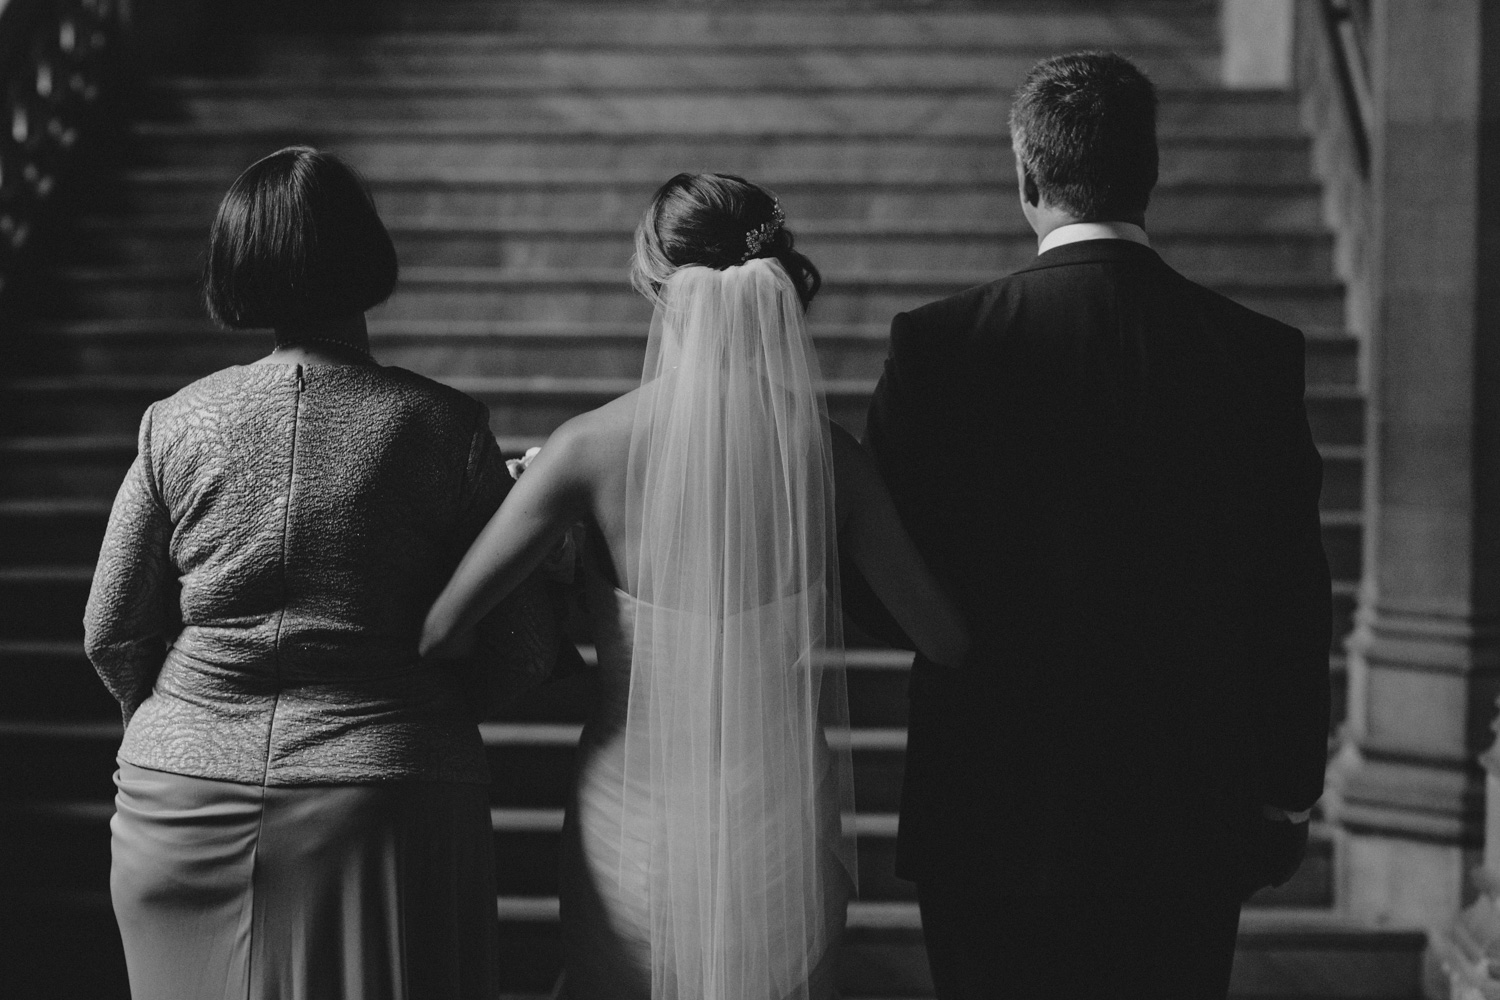 knox-college-toronto-wedding-photos-by-sam-wong-of-artanis-collective_26